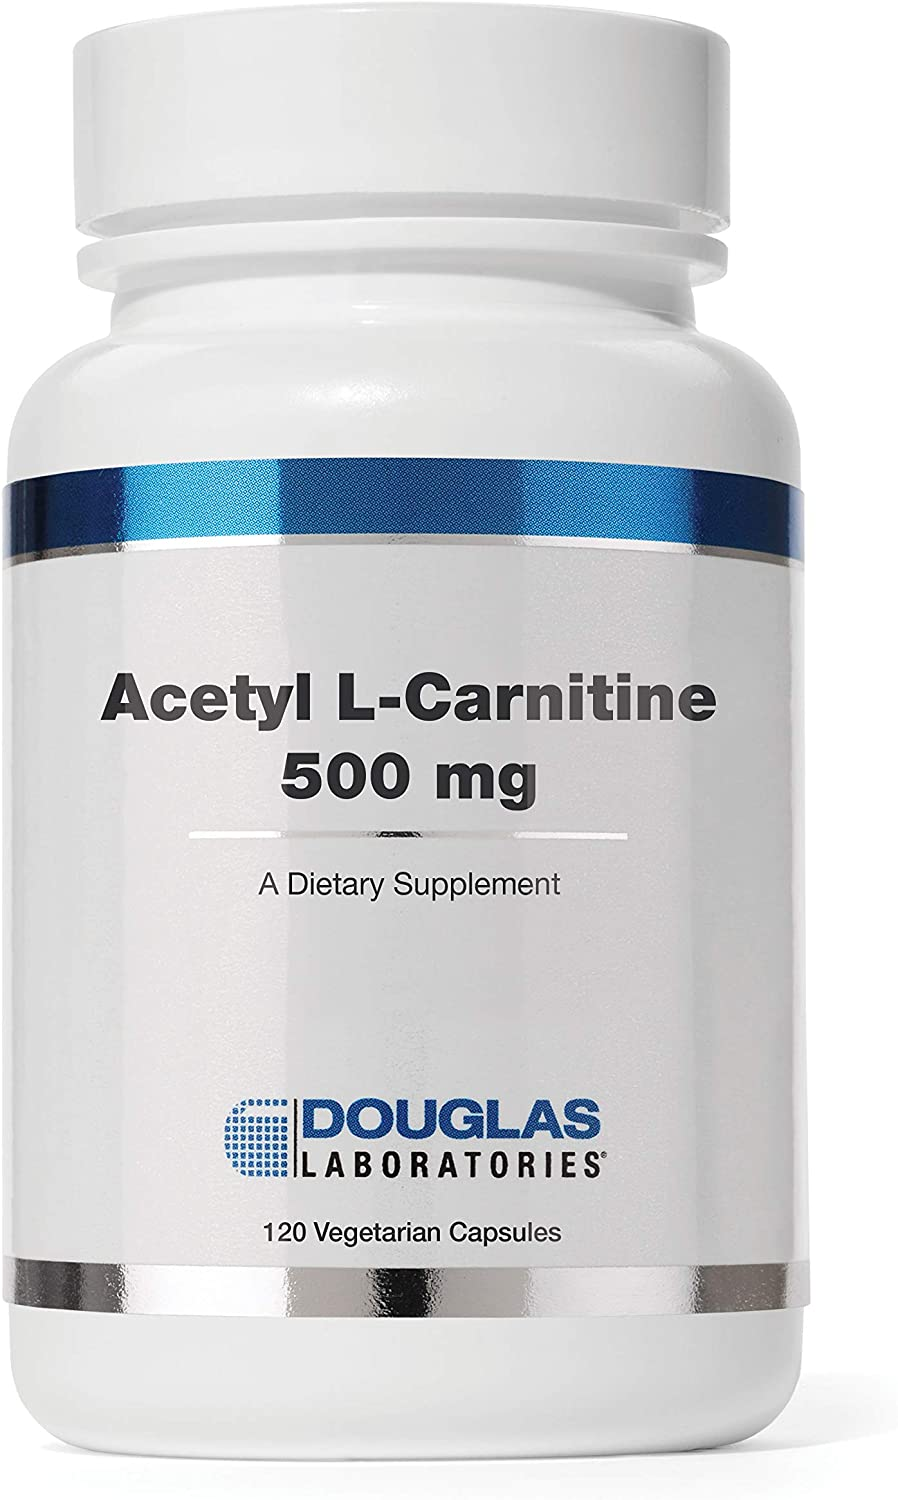 Douglas Laboratories – Acetyl-L-Carnitine – Supports Brain and Nerve Function During The Normal Aging Process* – 120 Capsules